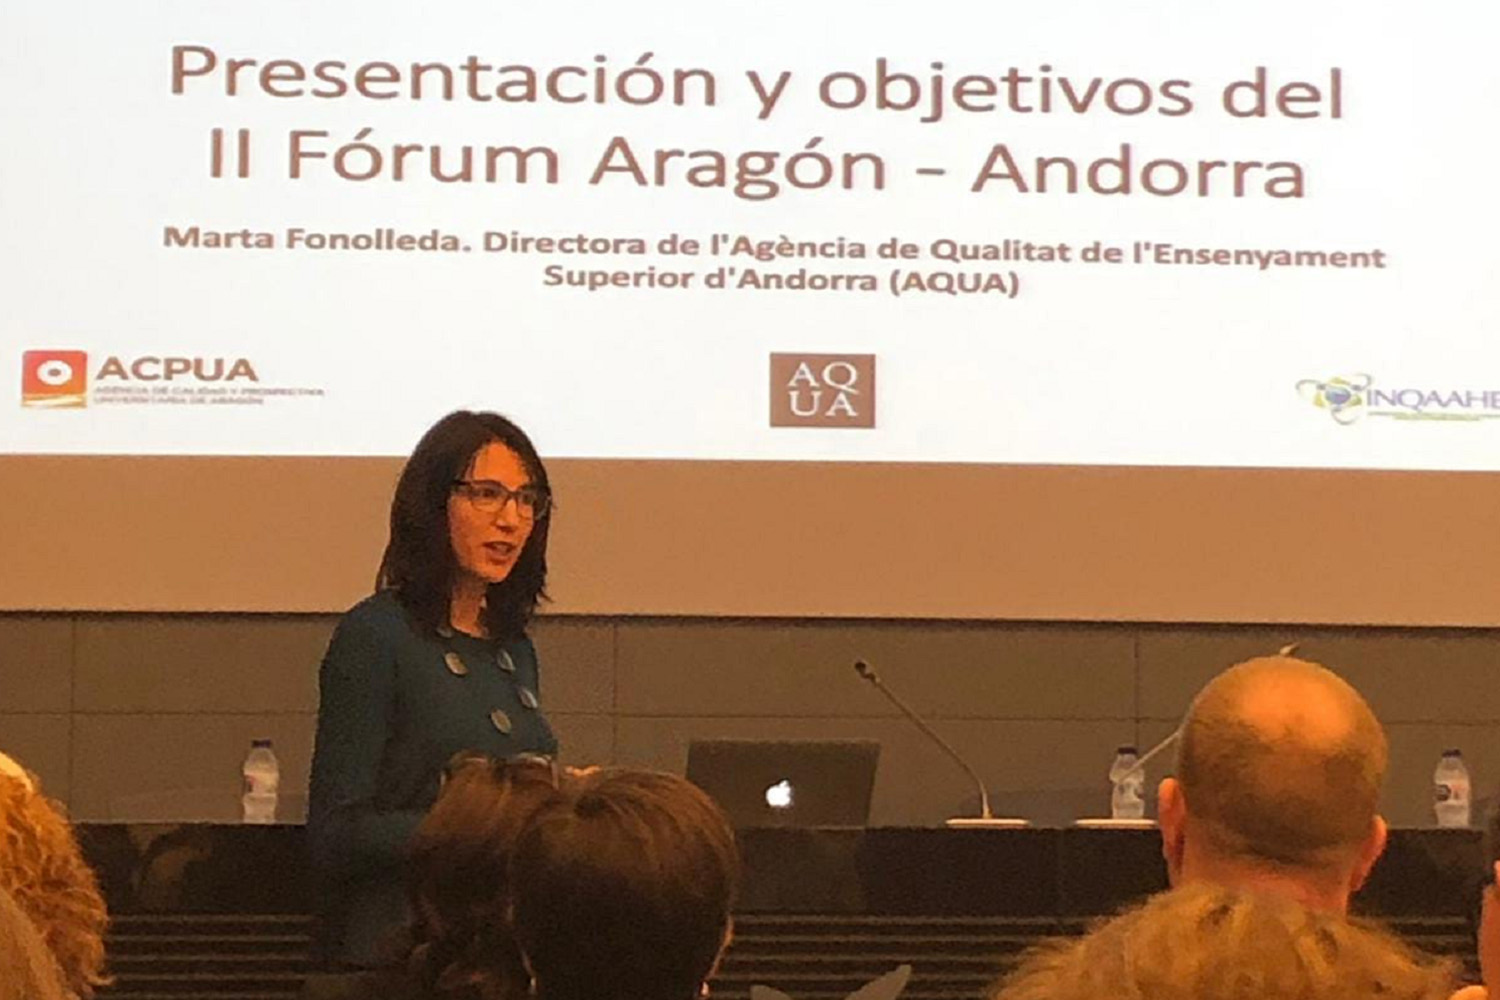 Marta Fonolleda, Director of AQUA), presenting the II Forum